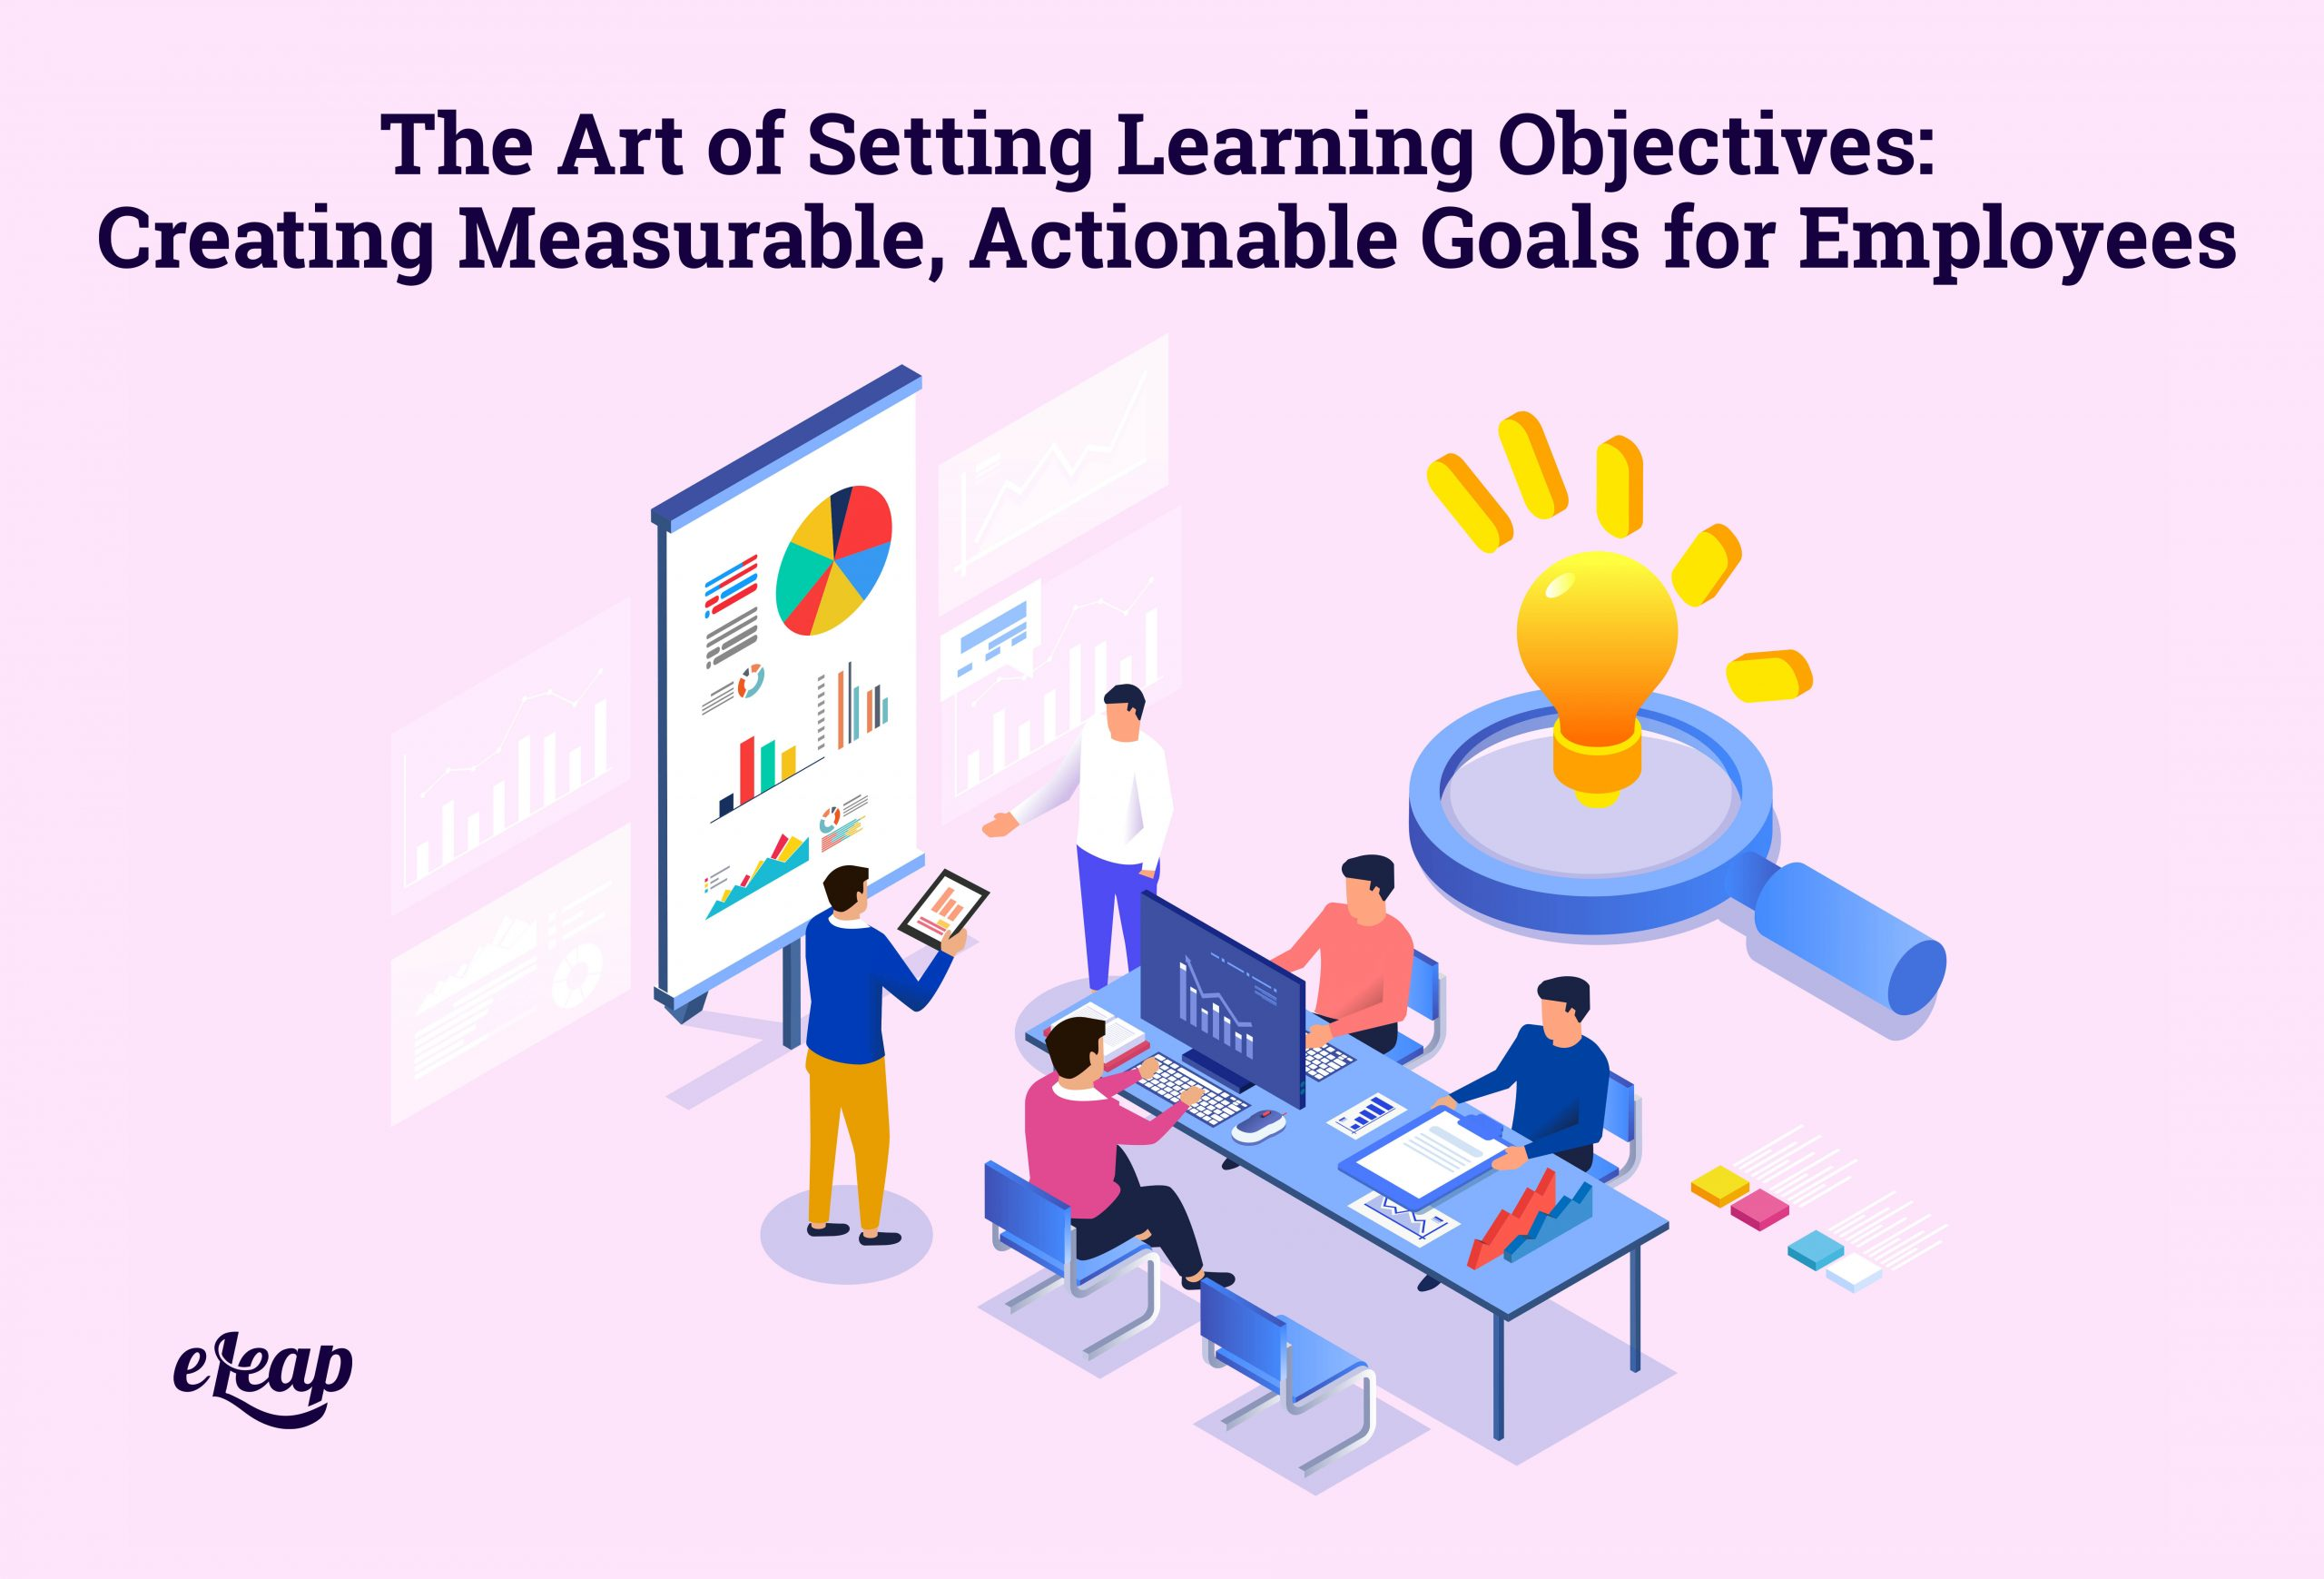 The Art of Setting Learning Objectives: Creating Measurable, Actionable Goals for Employees